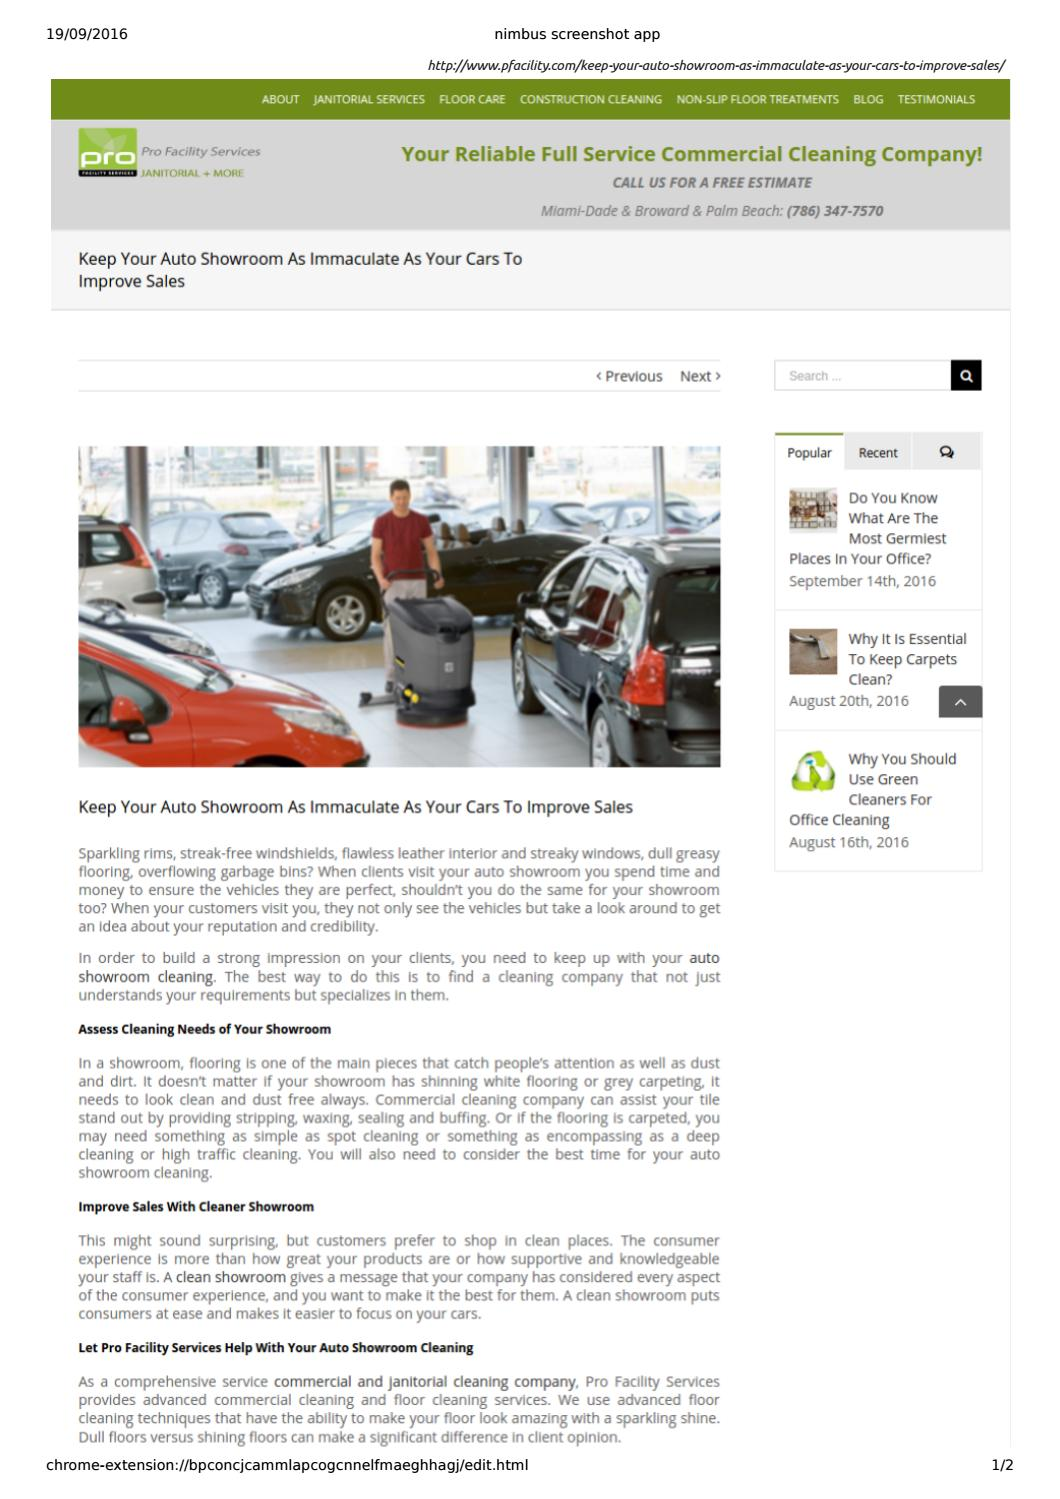 Maintain Cleaning of Auto Showroom With Pro Facility